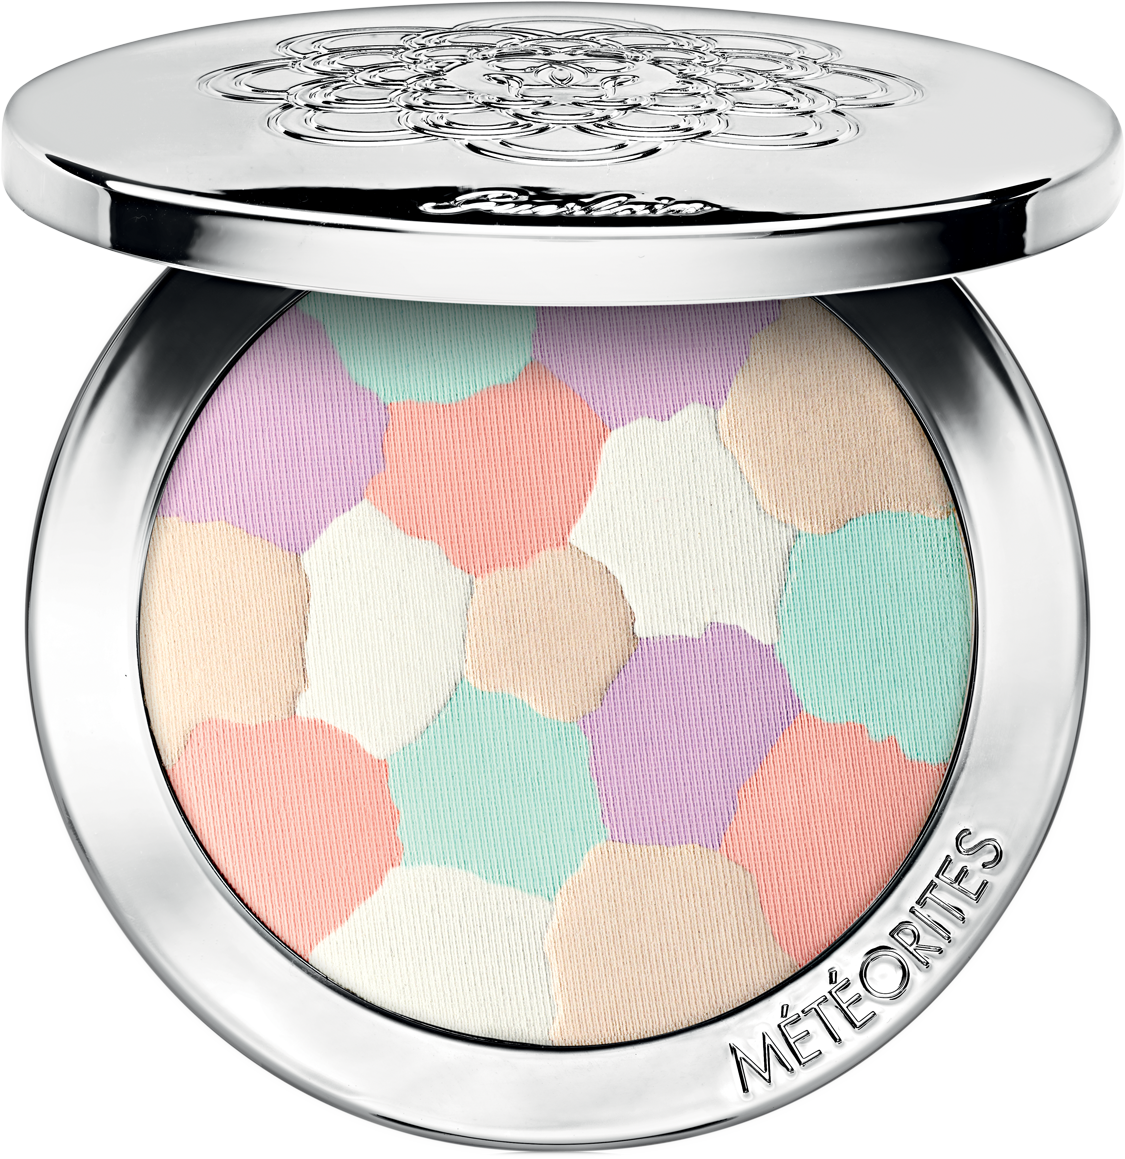 Tendres les guerlain spring makeup collection recommend to wear for everyday in 2019